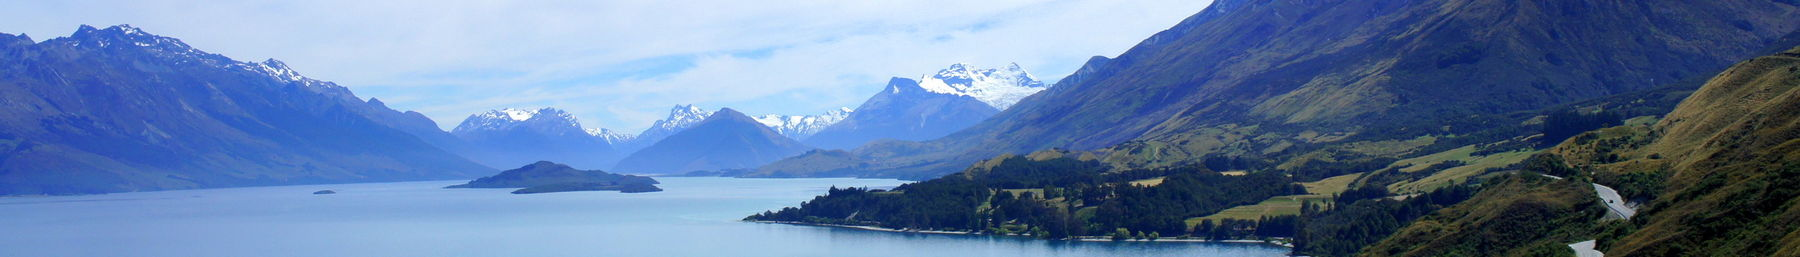 View toward Glenorchy on the road from Queenstown that runs along Lake Wakatipu